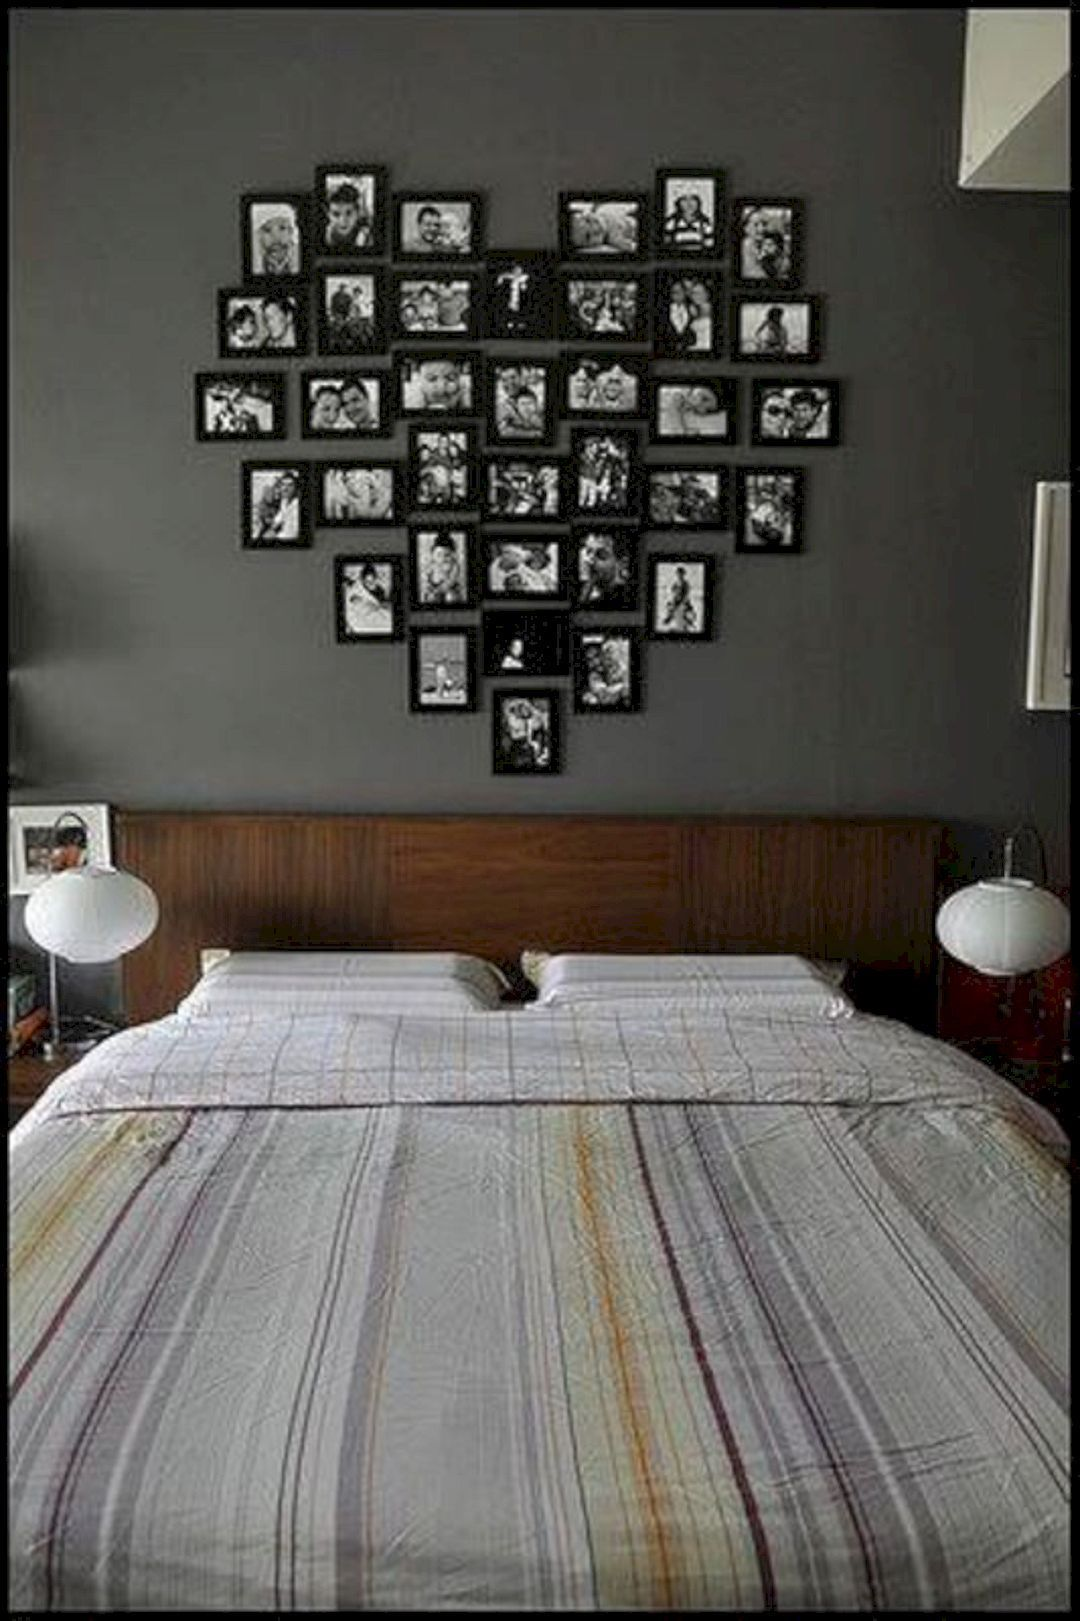 18 Best DIY Home Decor on A Budget https://www.futuristarchitecture Inexpensive Bedroom Decorating Ideas Html on inexpensive lighting ideas, inexpensive bedroom flooring ideas, inexpensive window covering ideas, inexpensive bedroom furniture, hipster bedroom ideas, affordable bedroom ideas, cheap bedroom ideas, inexpensive kitchen ideas, bedroom paint ideas, inexpensive master bedroom ideas, inexpensive bedroom storage ideas, inexpensive wall decor ideas, inexpensive girls bedroom ideas, inexpensive living room ideas, inexpensive bedroom organization, inexpensive guest bedroom ideas, inexpensive bedroom bedding, inexpensive home ideas, inexpensive furniture ideas, inexpensive interior door ideas,